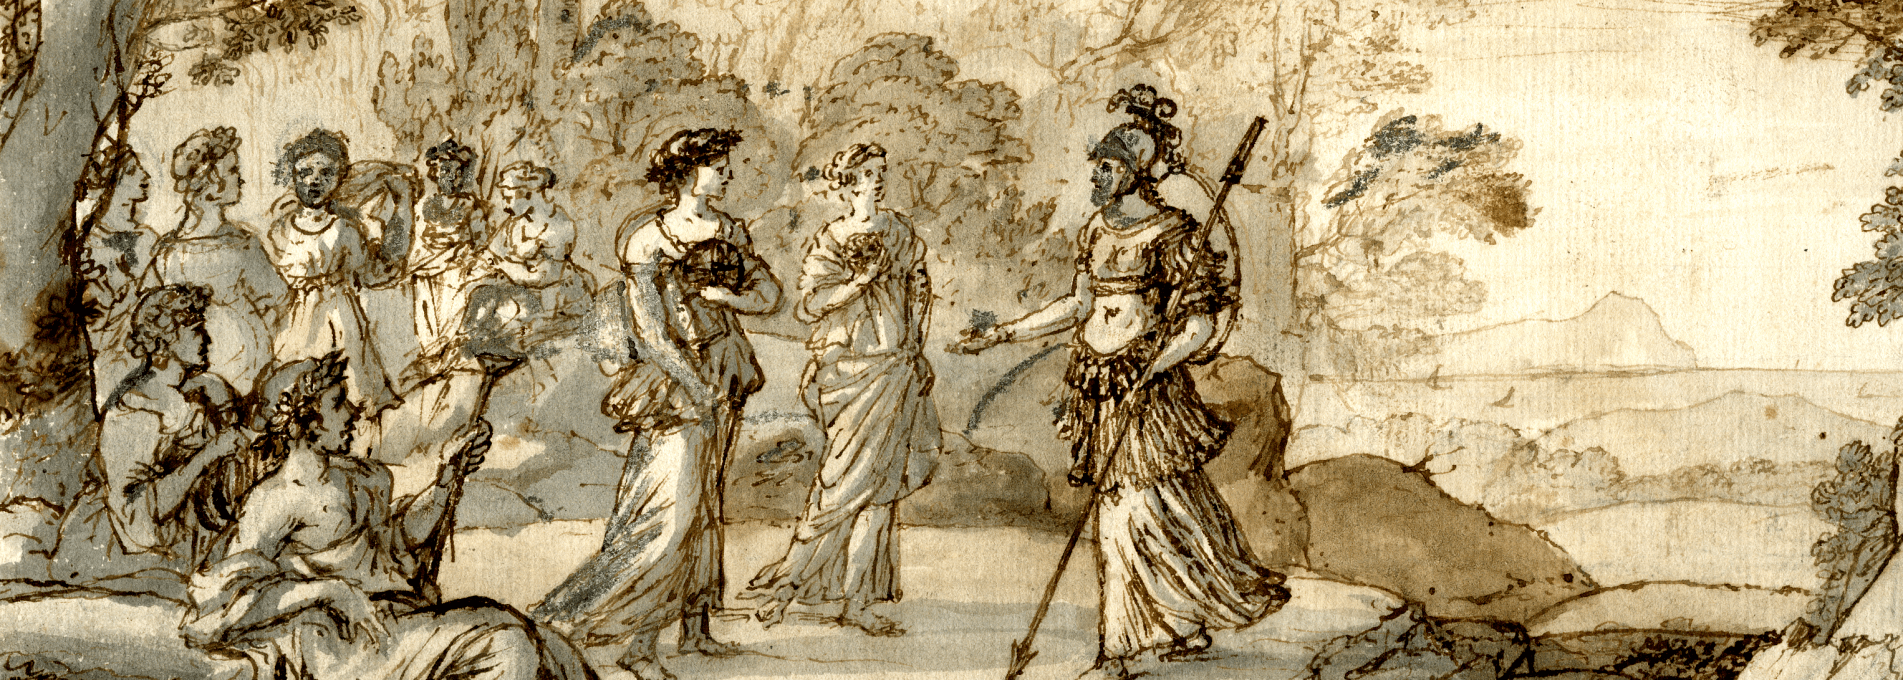 Claude Lorrain, Parnassus with Minerva visiting the Muses (detail) © The Trustees of the British Museum. Shared under a Creative Commons Attribution-NonCommercial-ShareAlike 4.0 International (CC BY-NC-SA 4.0) licence.